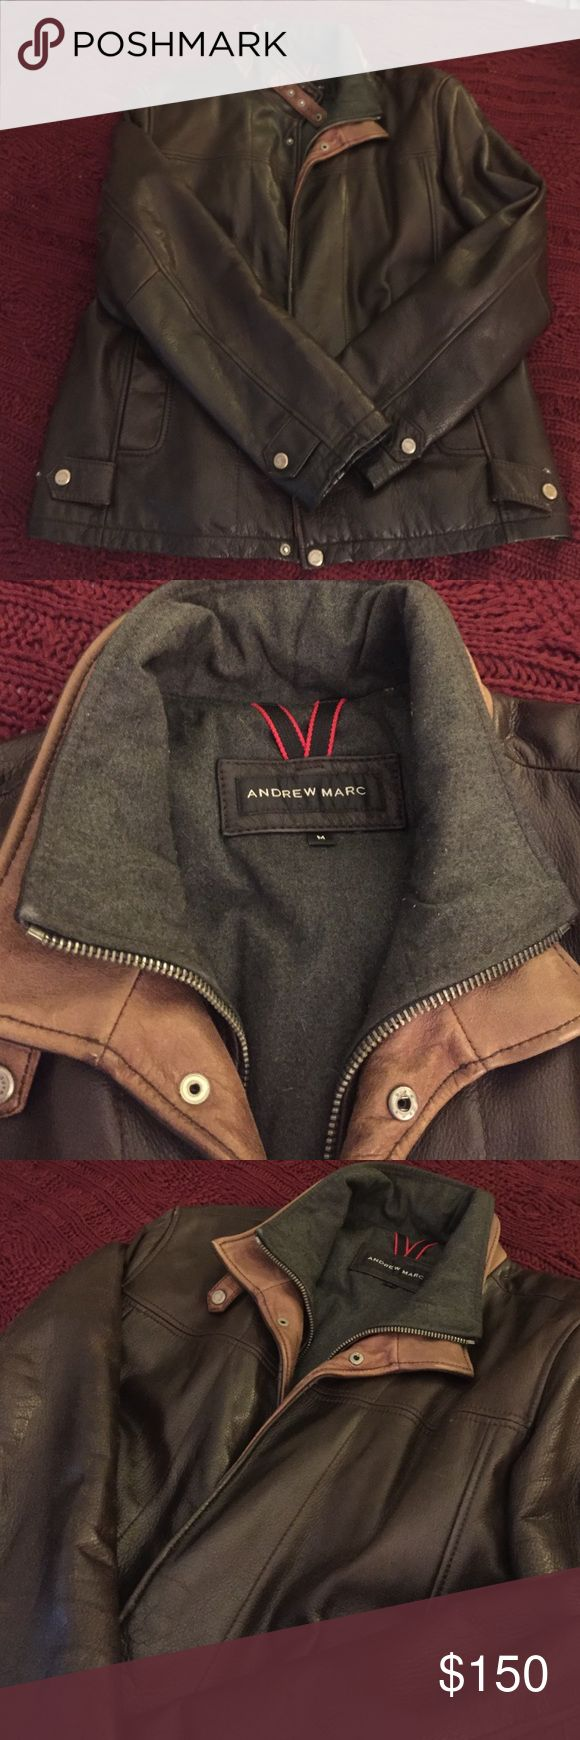 Andrew Marc Leather Jacket Andrew Marc Leather Jacket. Beautiful jacket!  In excellent condition! Andrew Marc Jackets & Coats